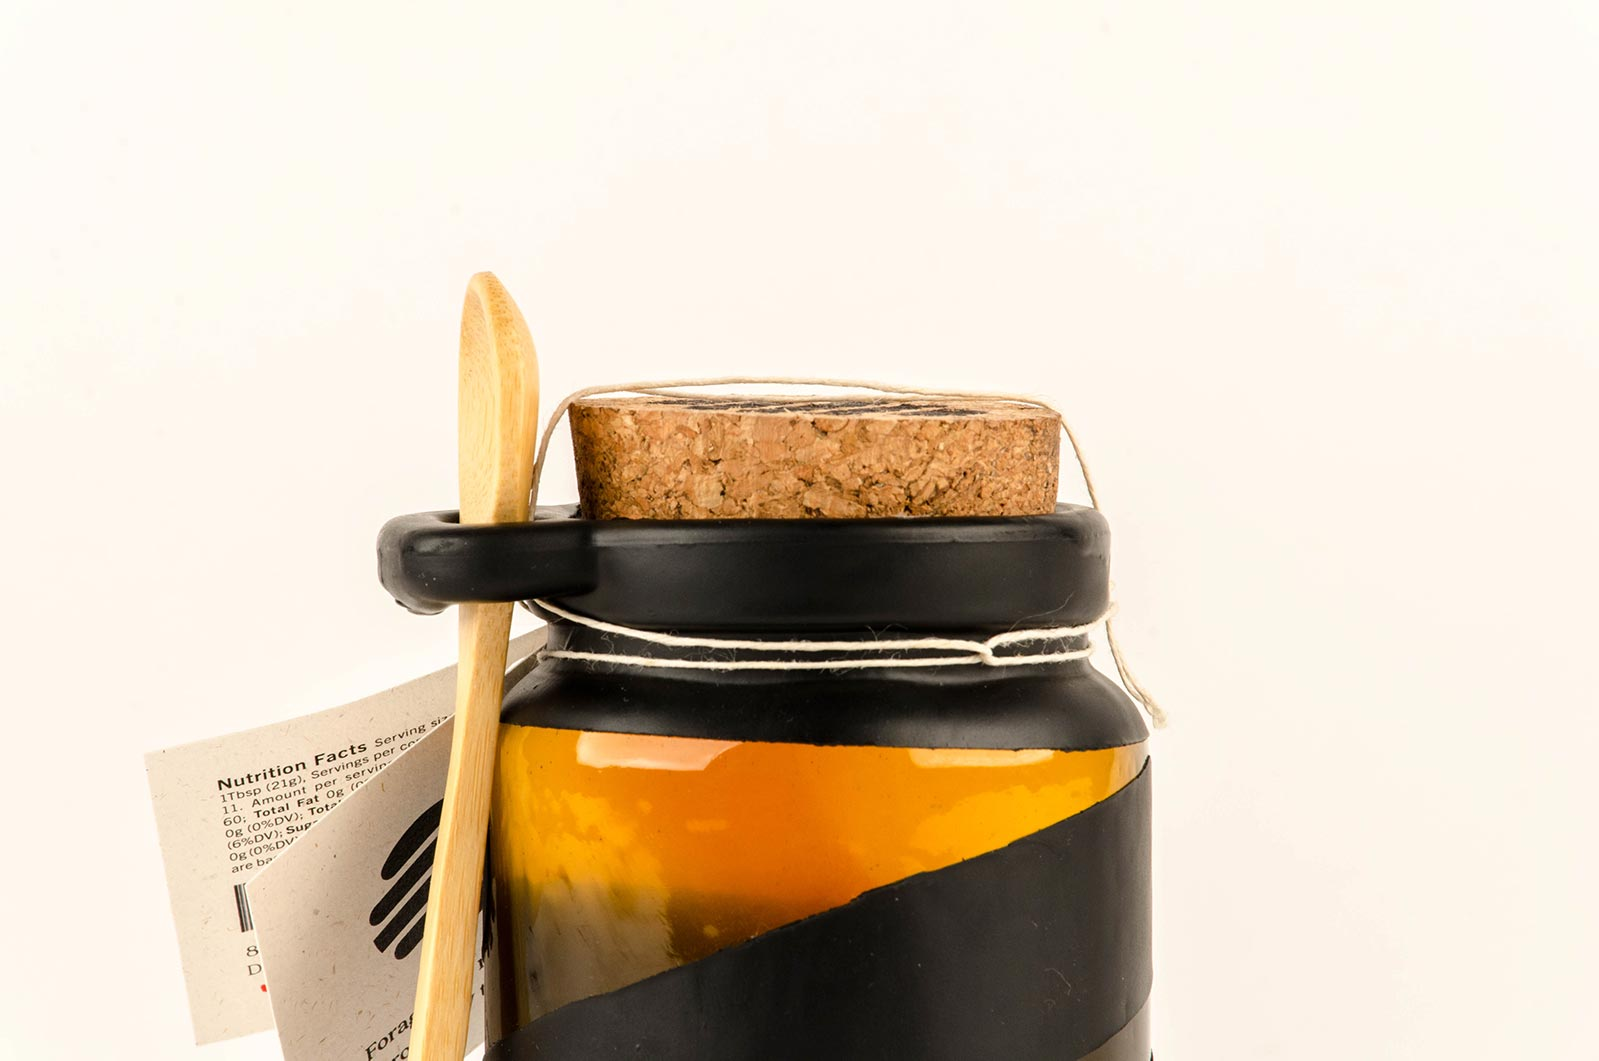 Coffee, bread, and Harvest Honey jar in modern photoshoot in Chicago showcasing the design for startups in chicago including packaging design, branding, product design, and photography